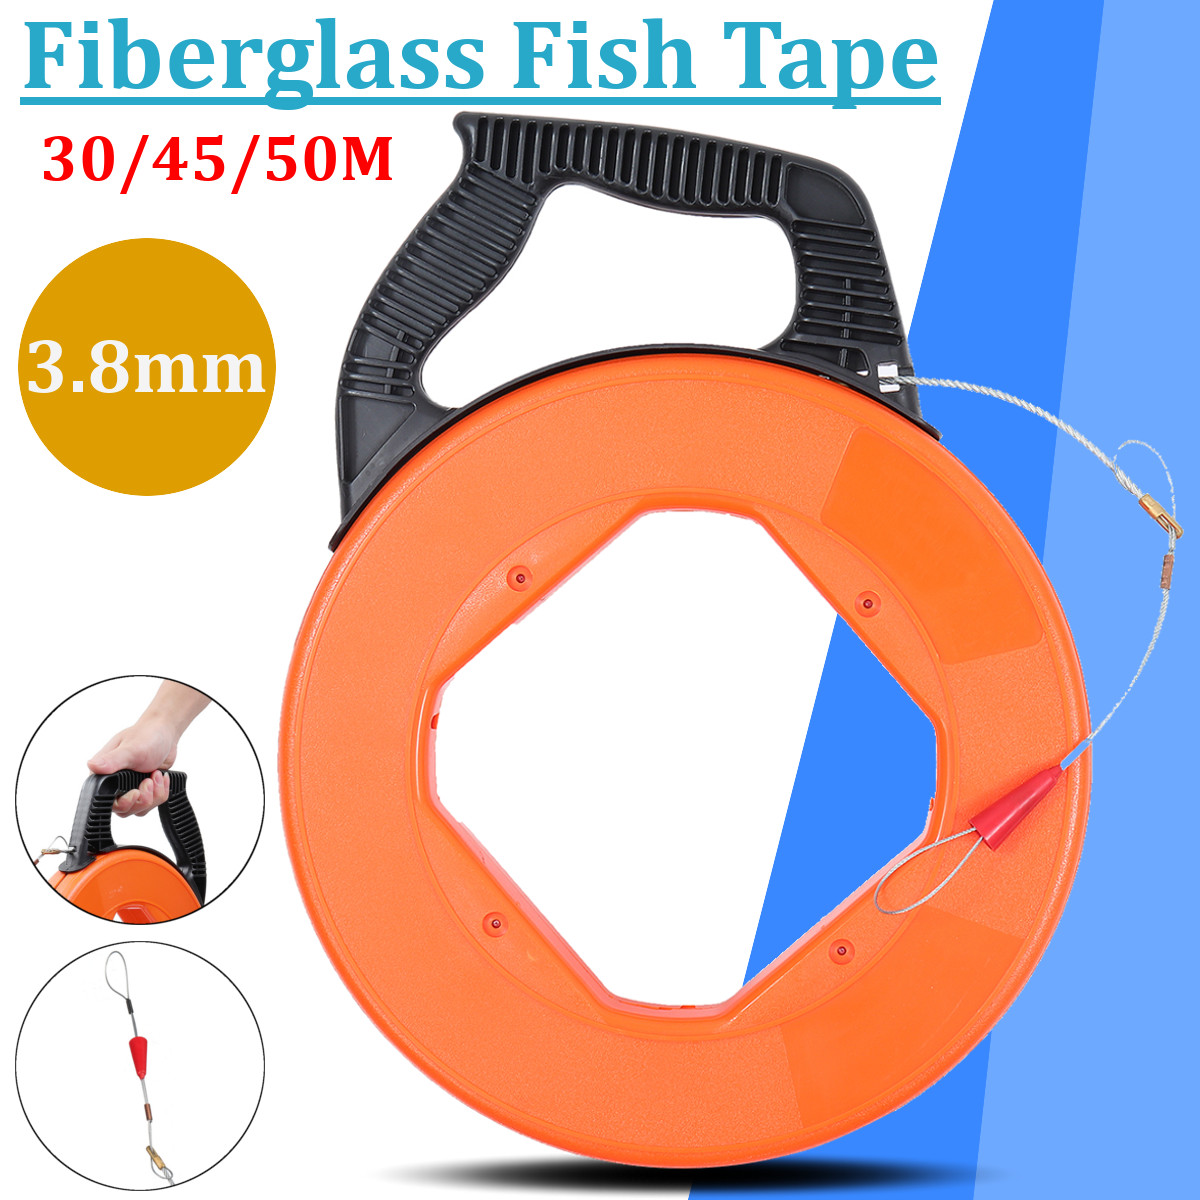 50/45/30m 3.8mm Fiberglass Fish Tape Electric Wire Puller Reel Conduit Ducting Rodder Fiberglass Fish Wire Cable Pulling Tool